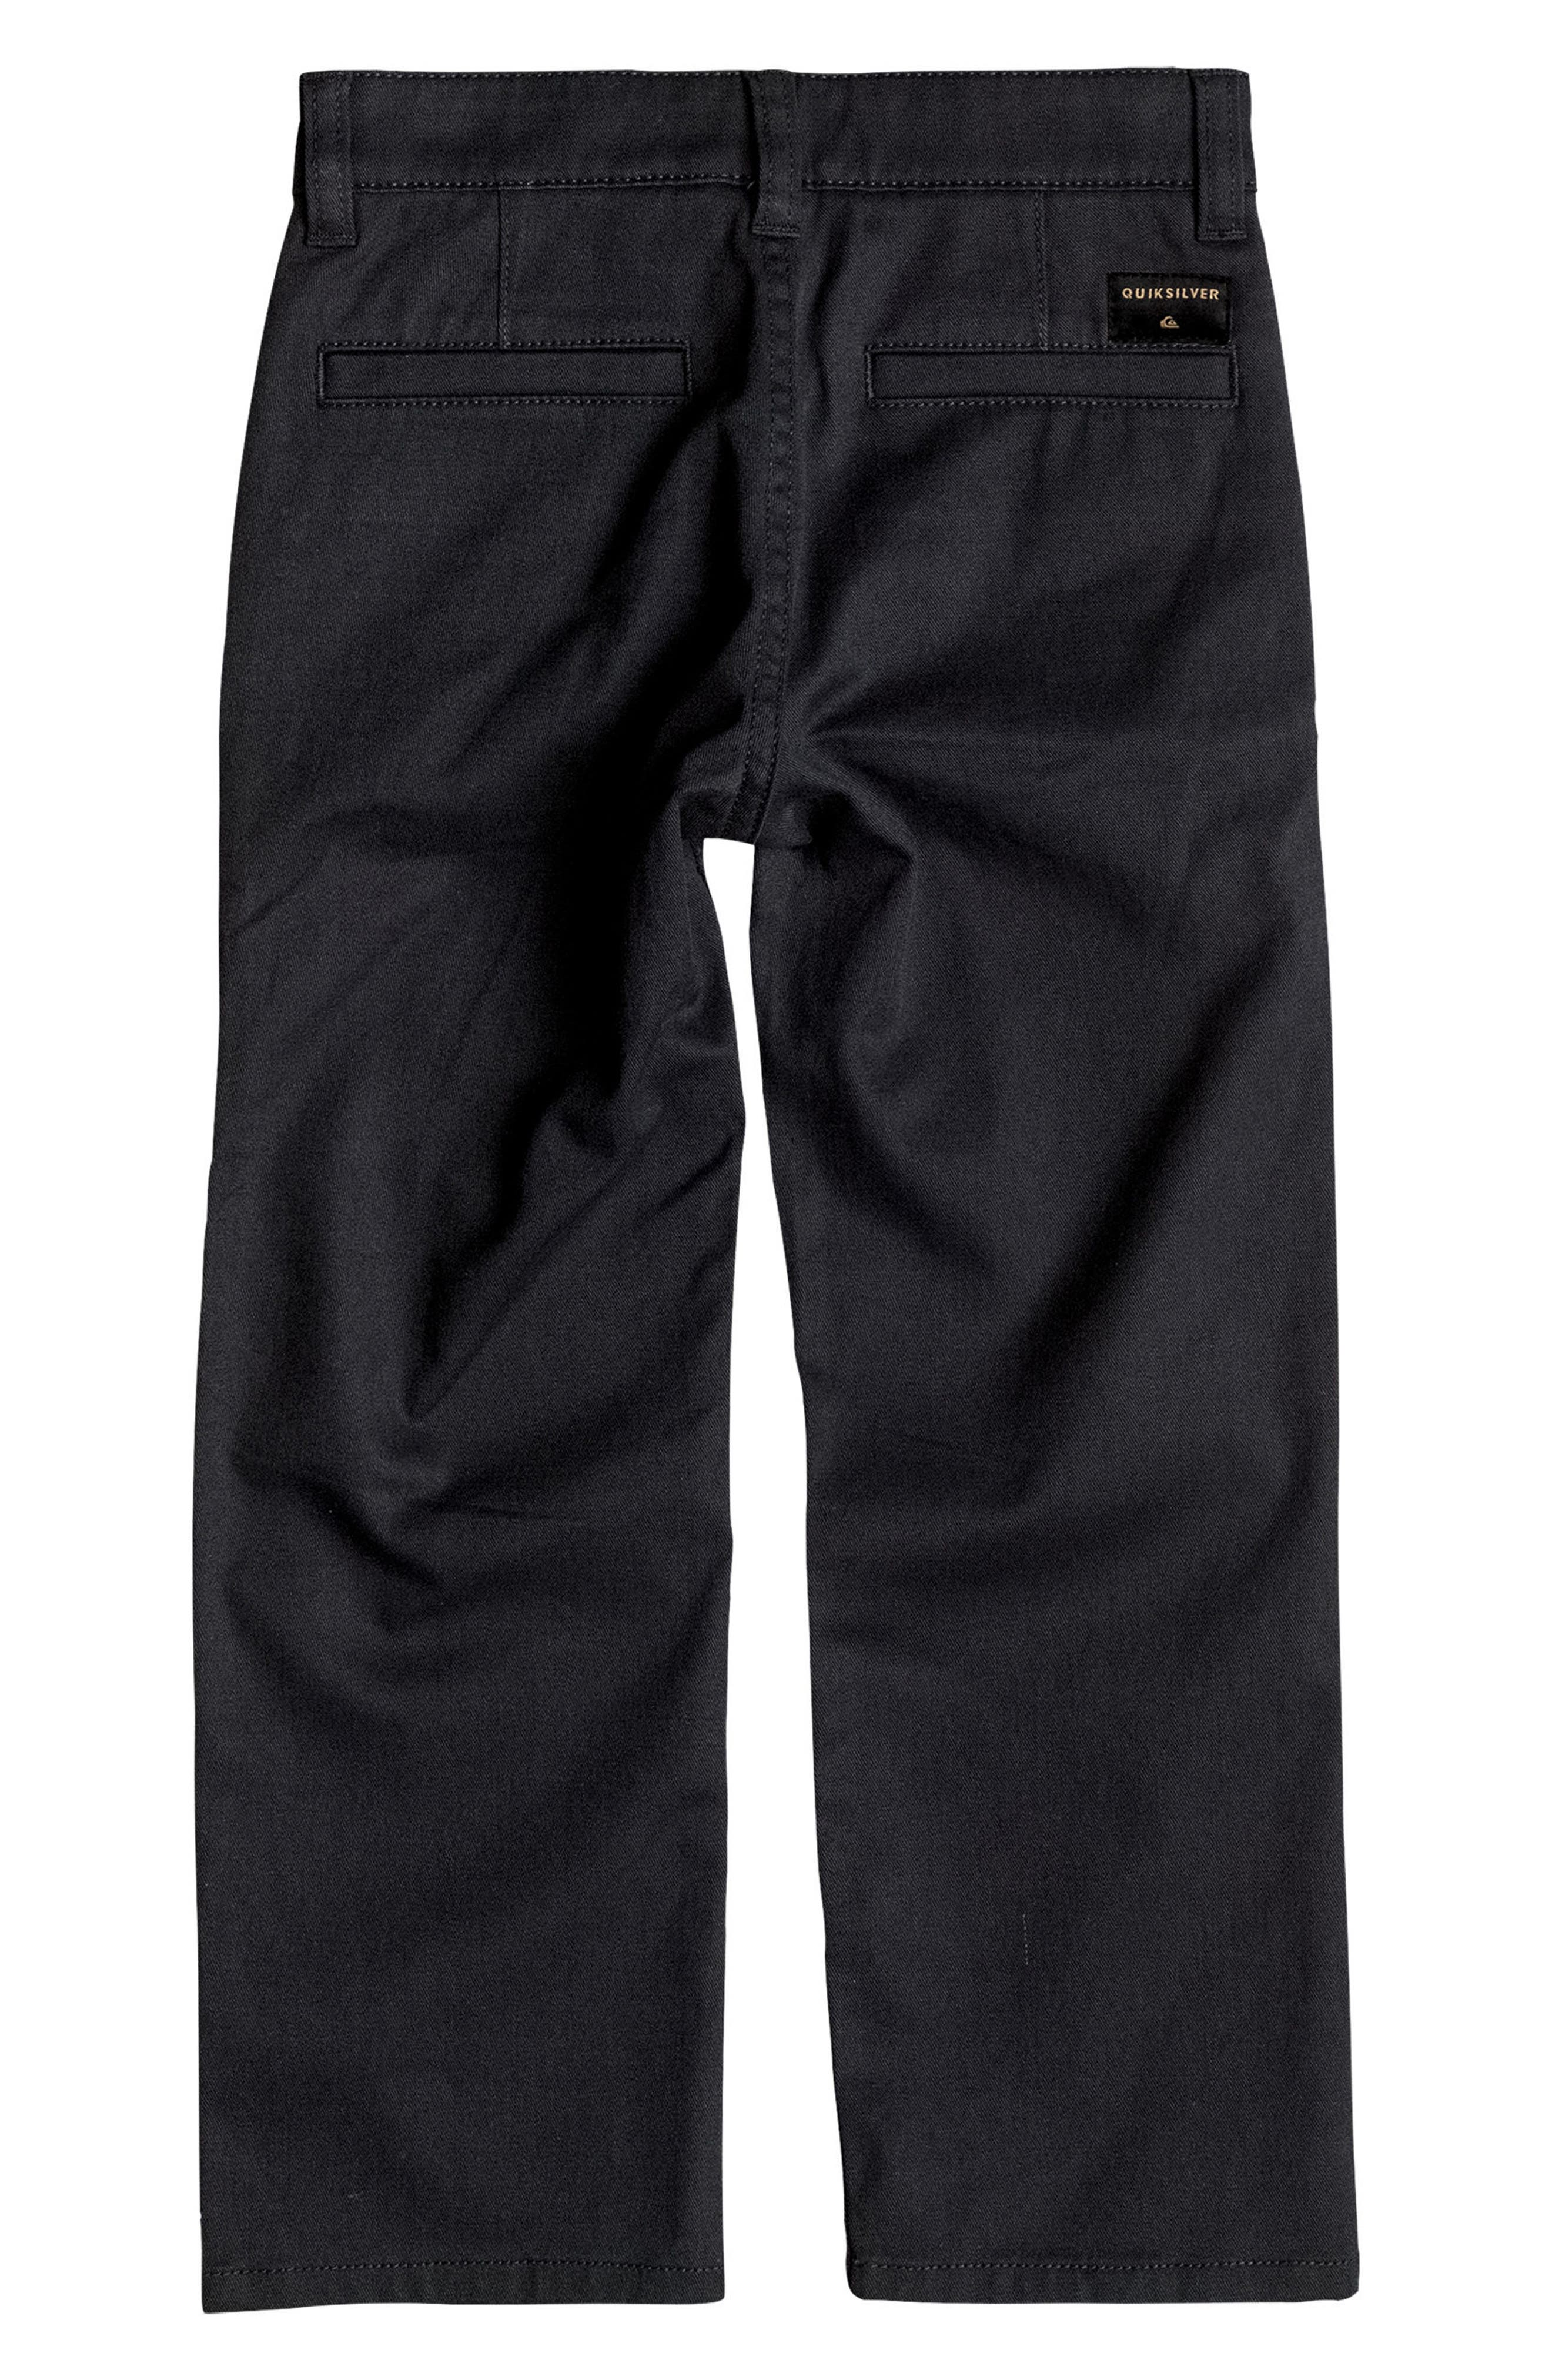 Everyday Union Pants,                             Alternate thumbnail 2, color,                             002